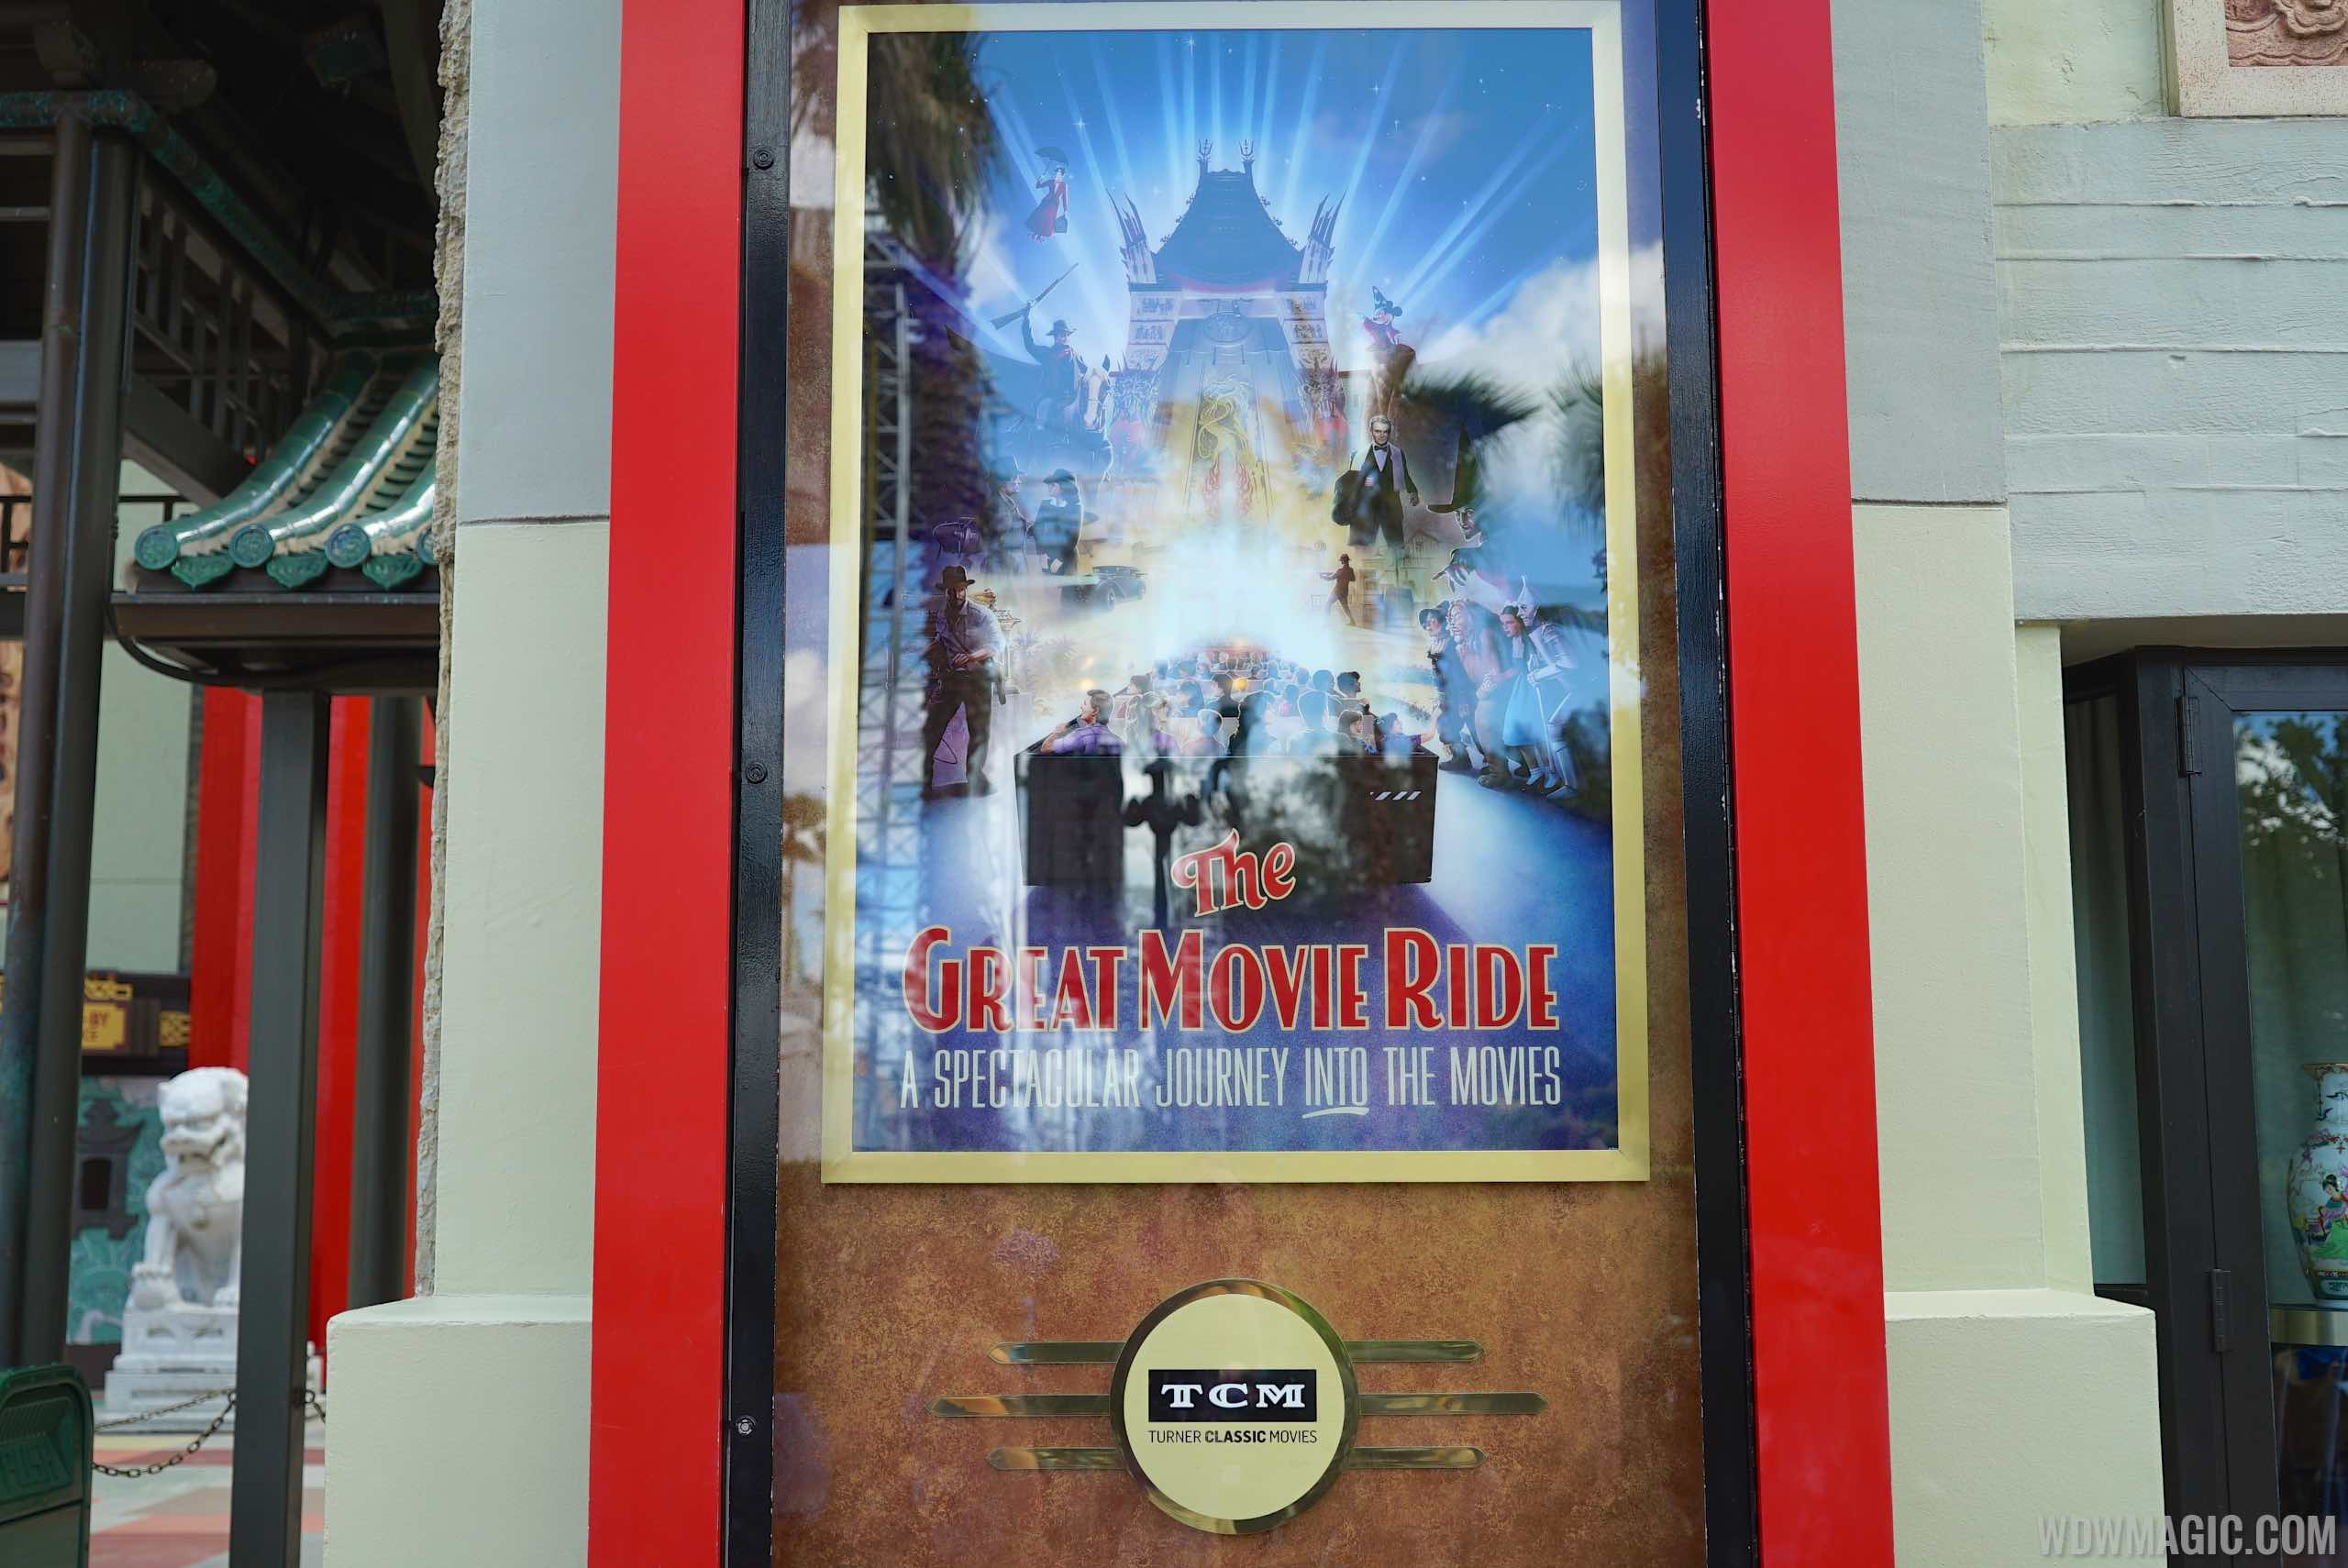 The Great Movie Ride TCM updates - Posters on the exterior